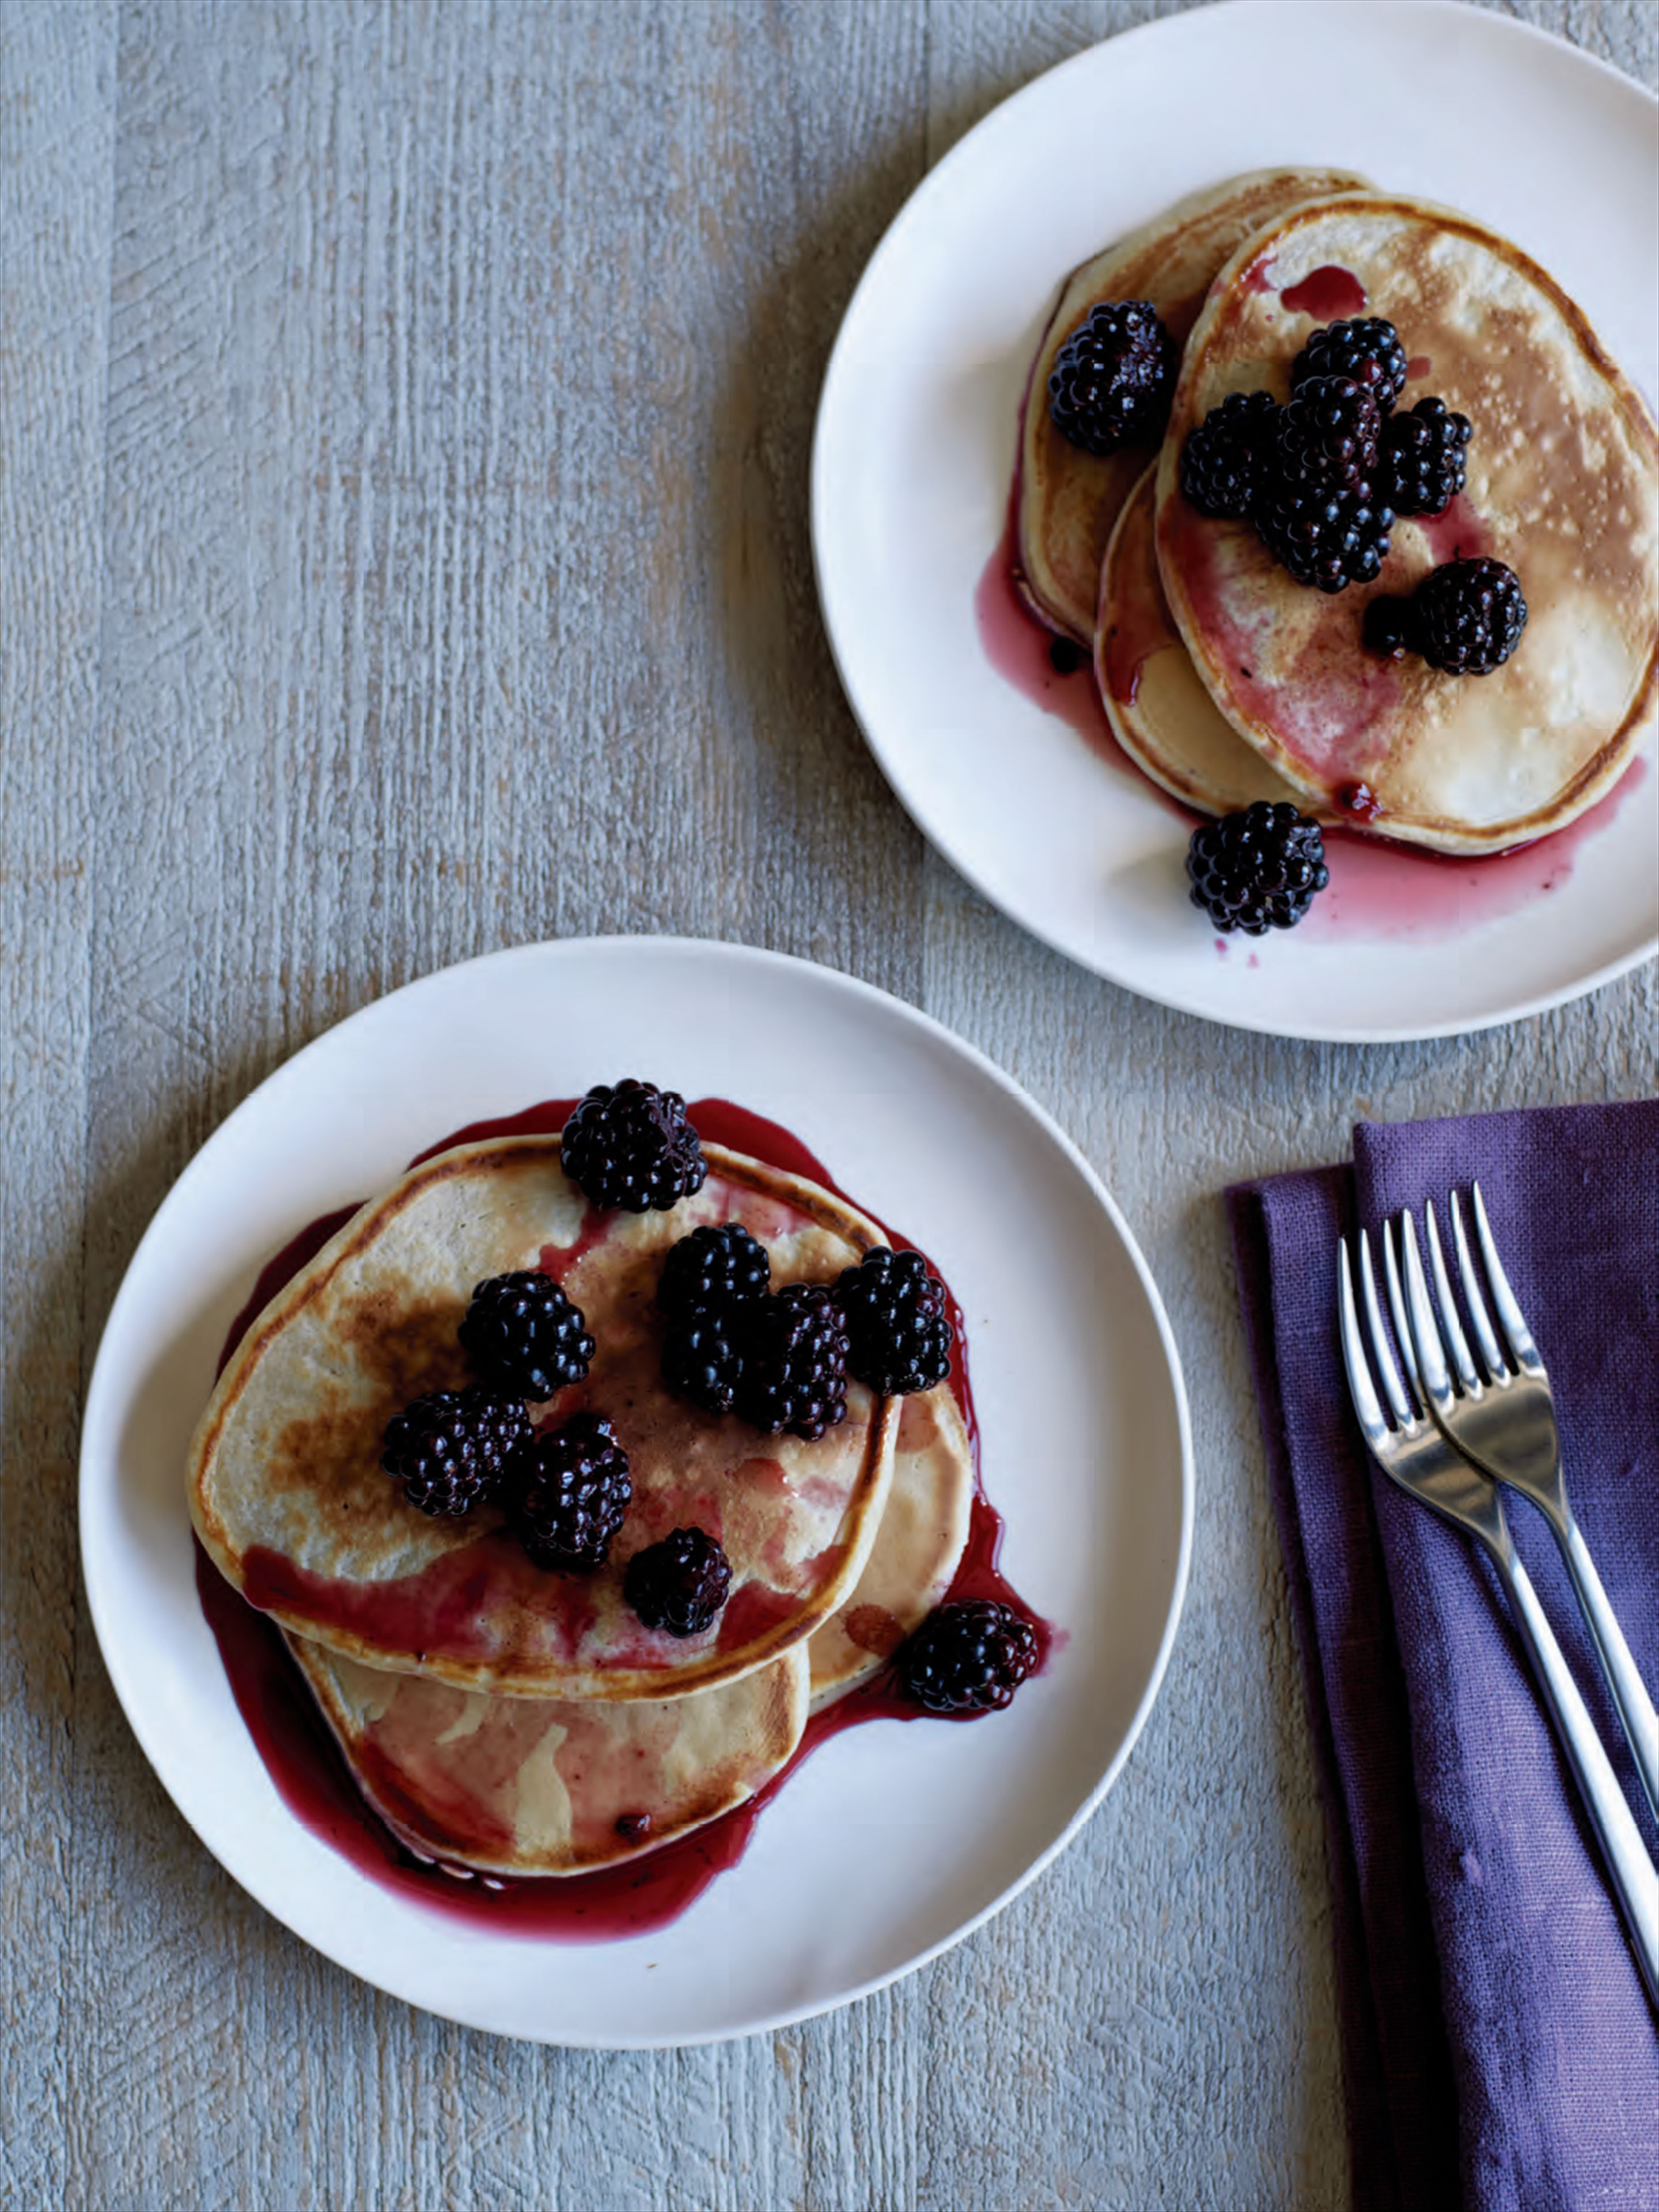 Blackberry & maple syrup pancakes